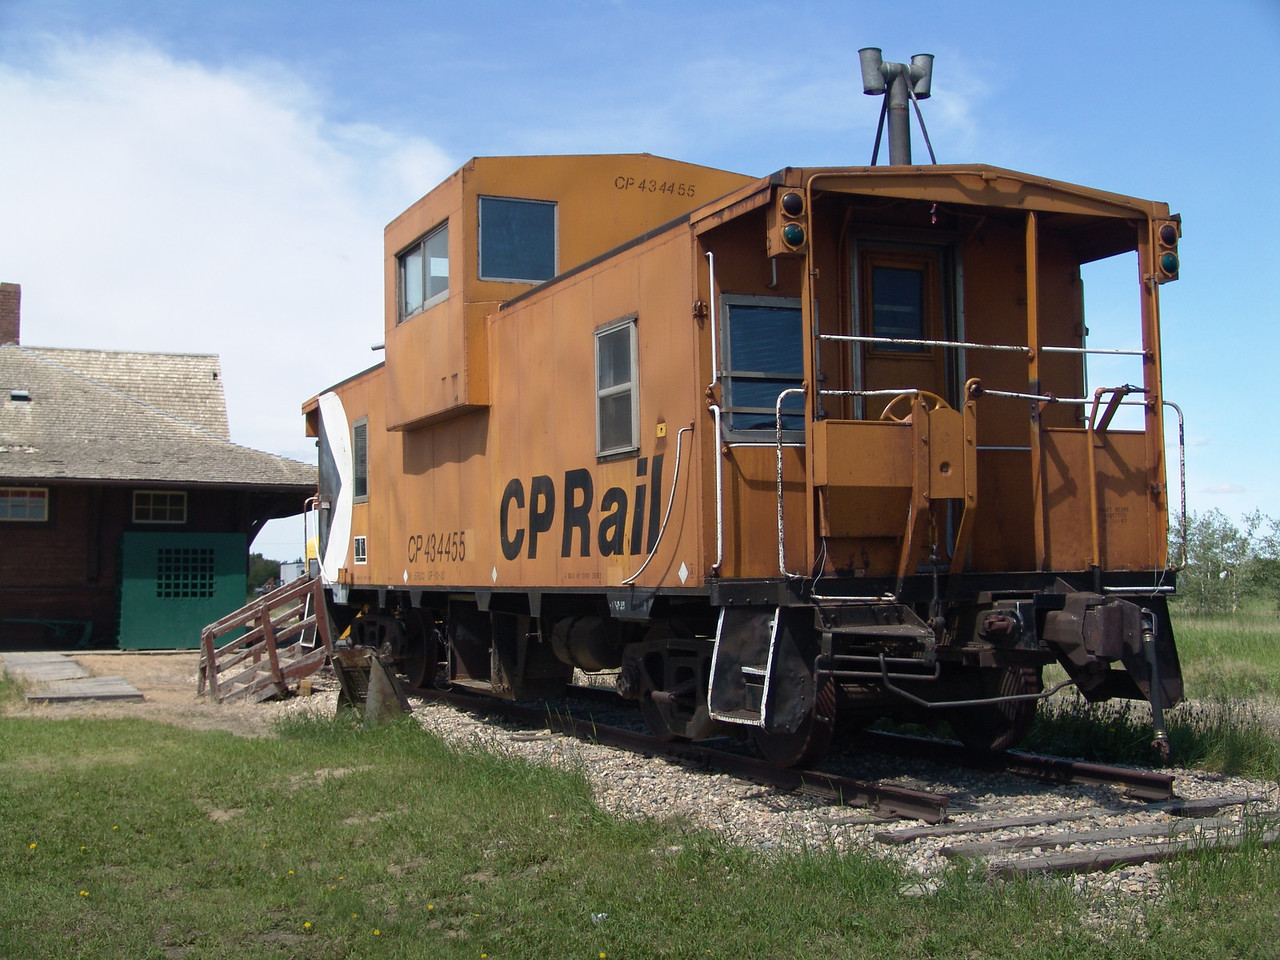 An old caboose on one length of railroad tracks.